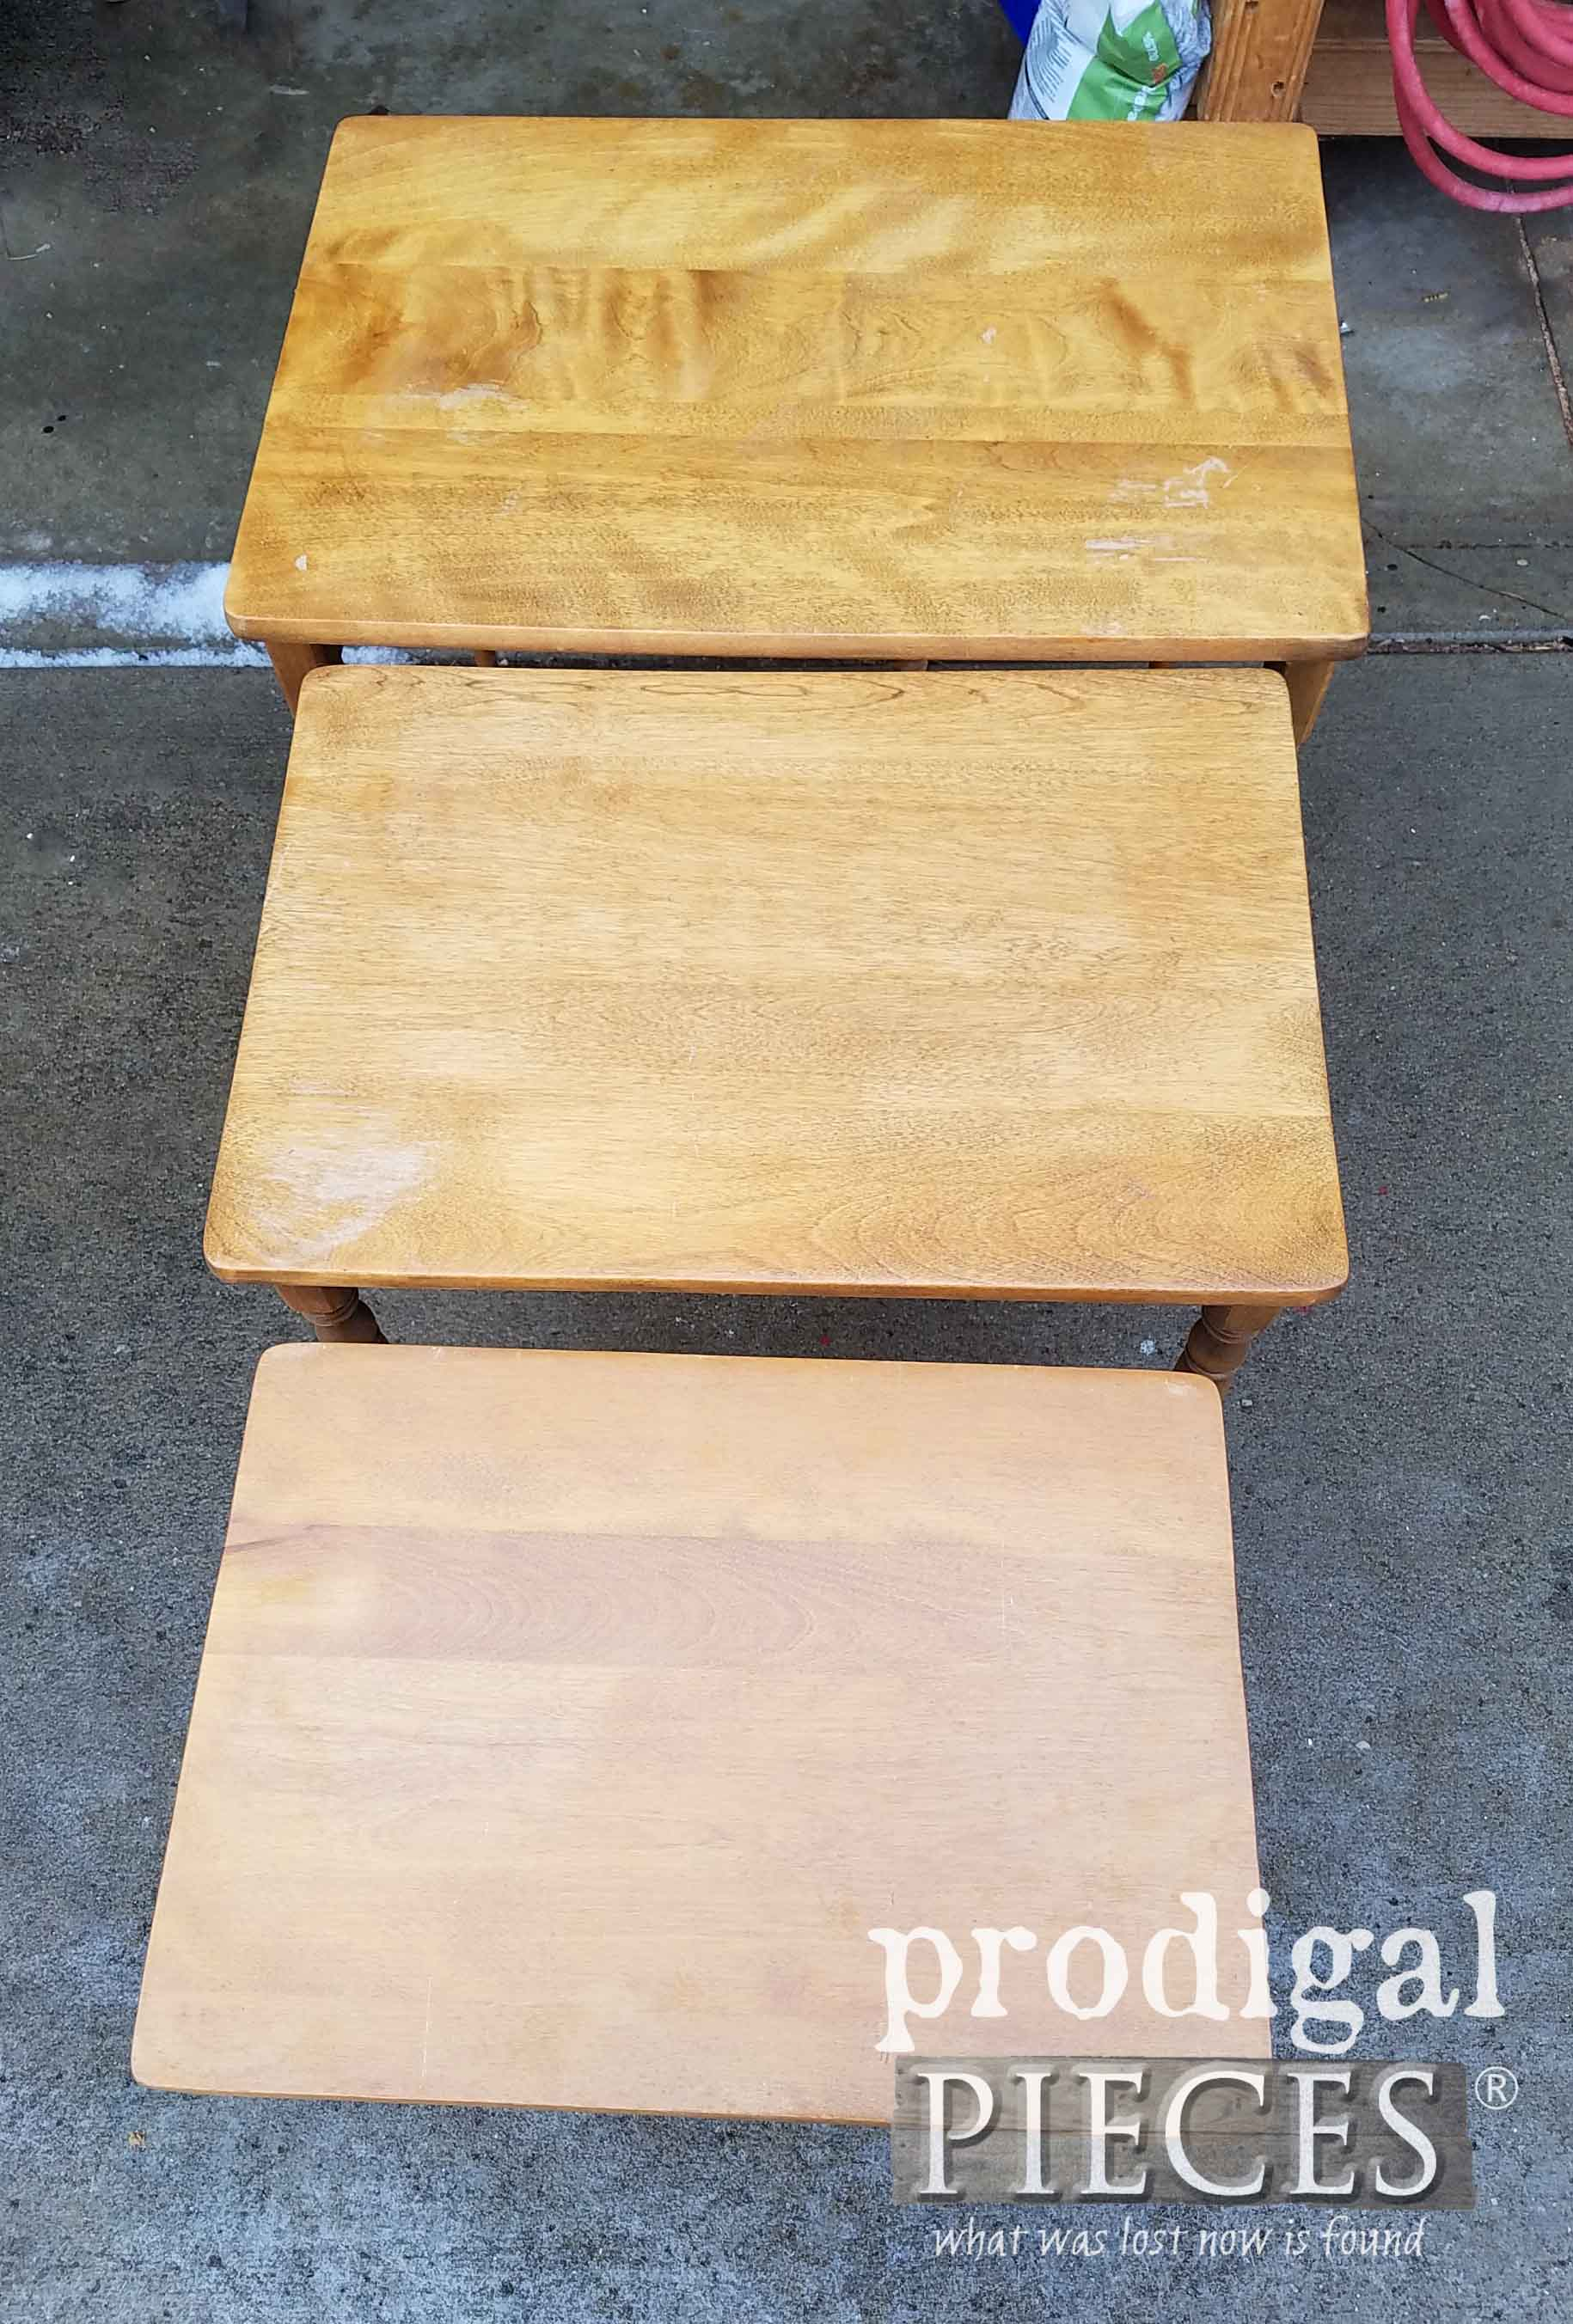 Damaged Tops of Vintage Nesting Tables | prodigalpieces.com